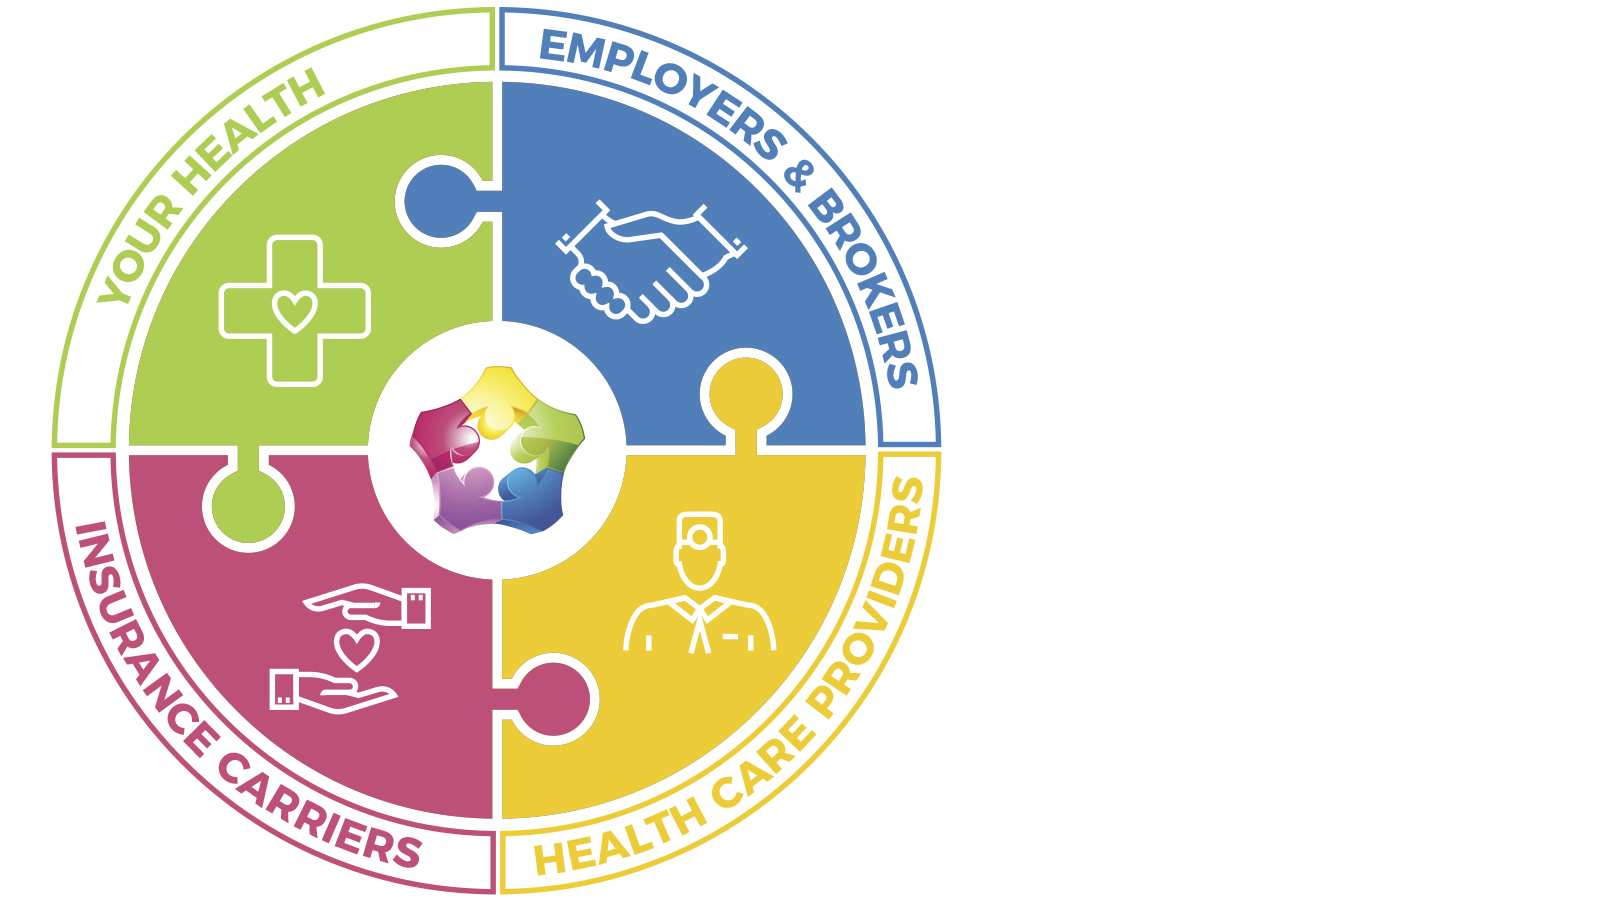 collaborative health partners employees workplace health